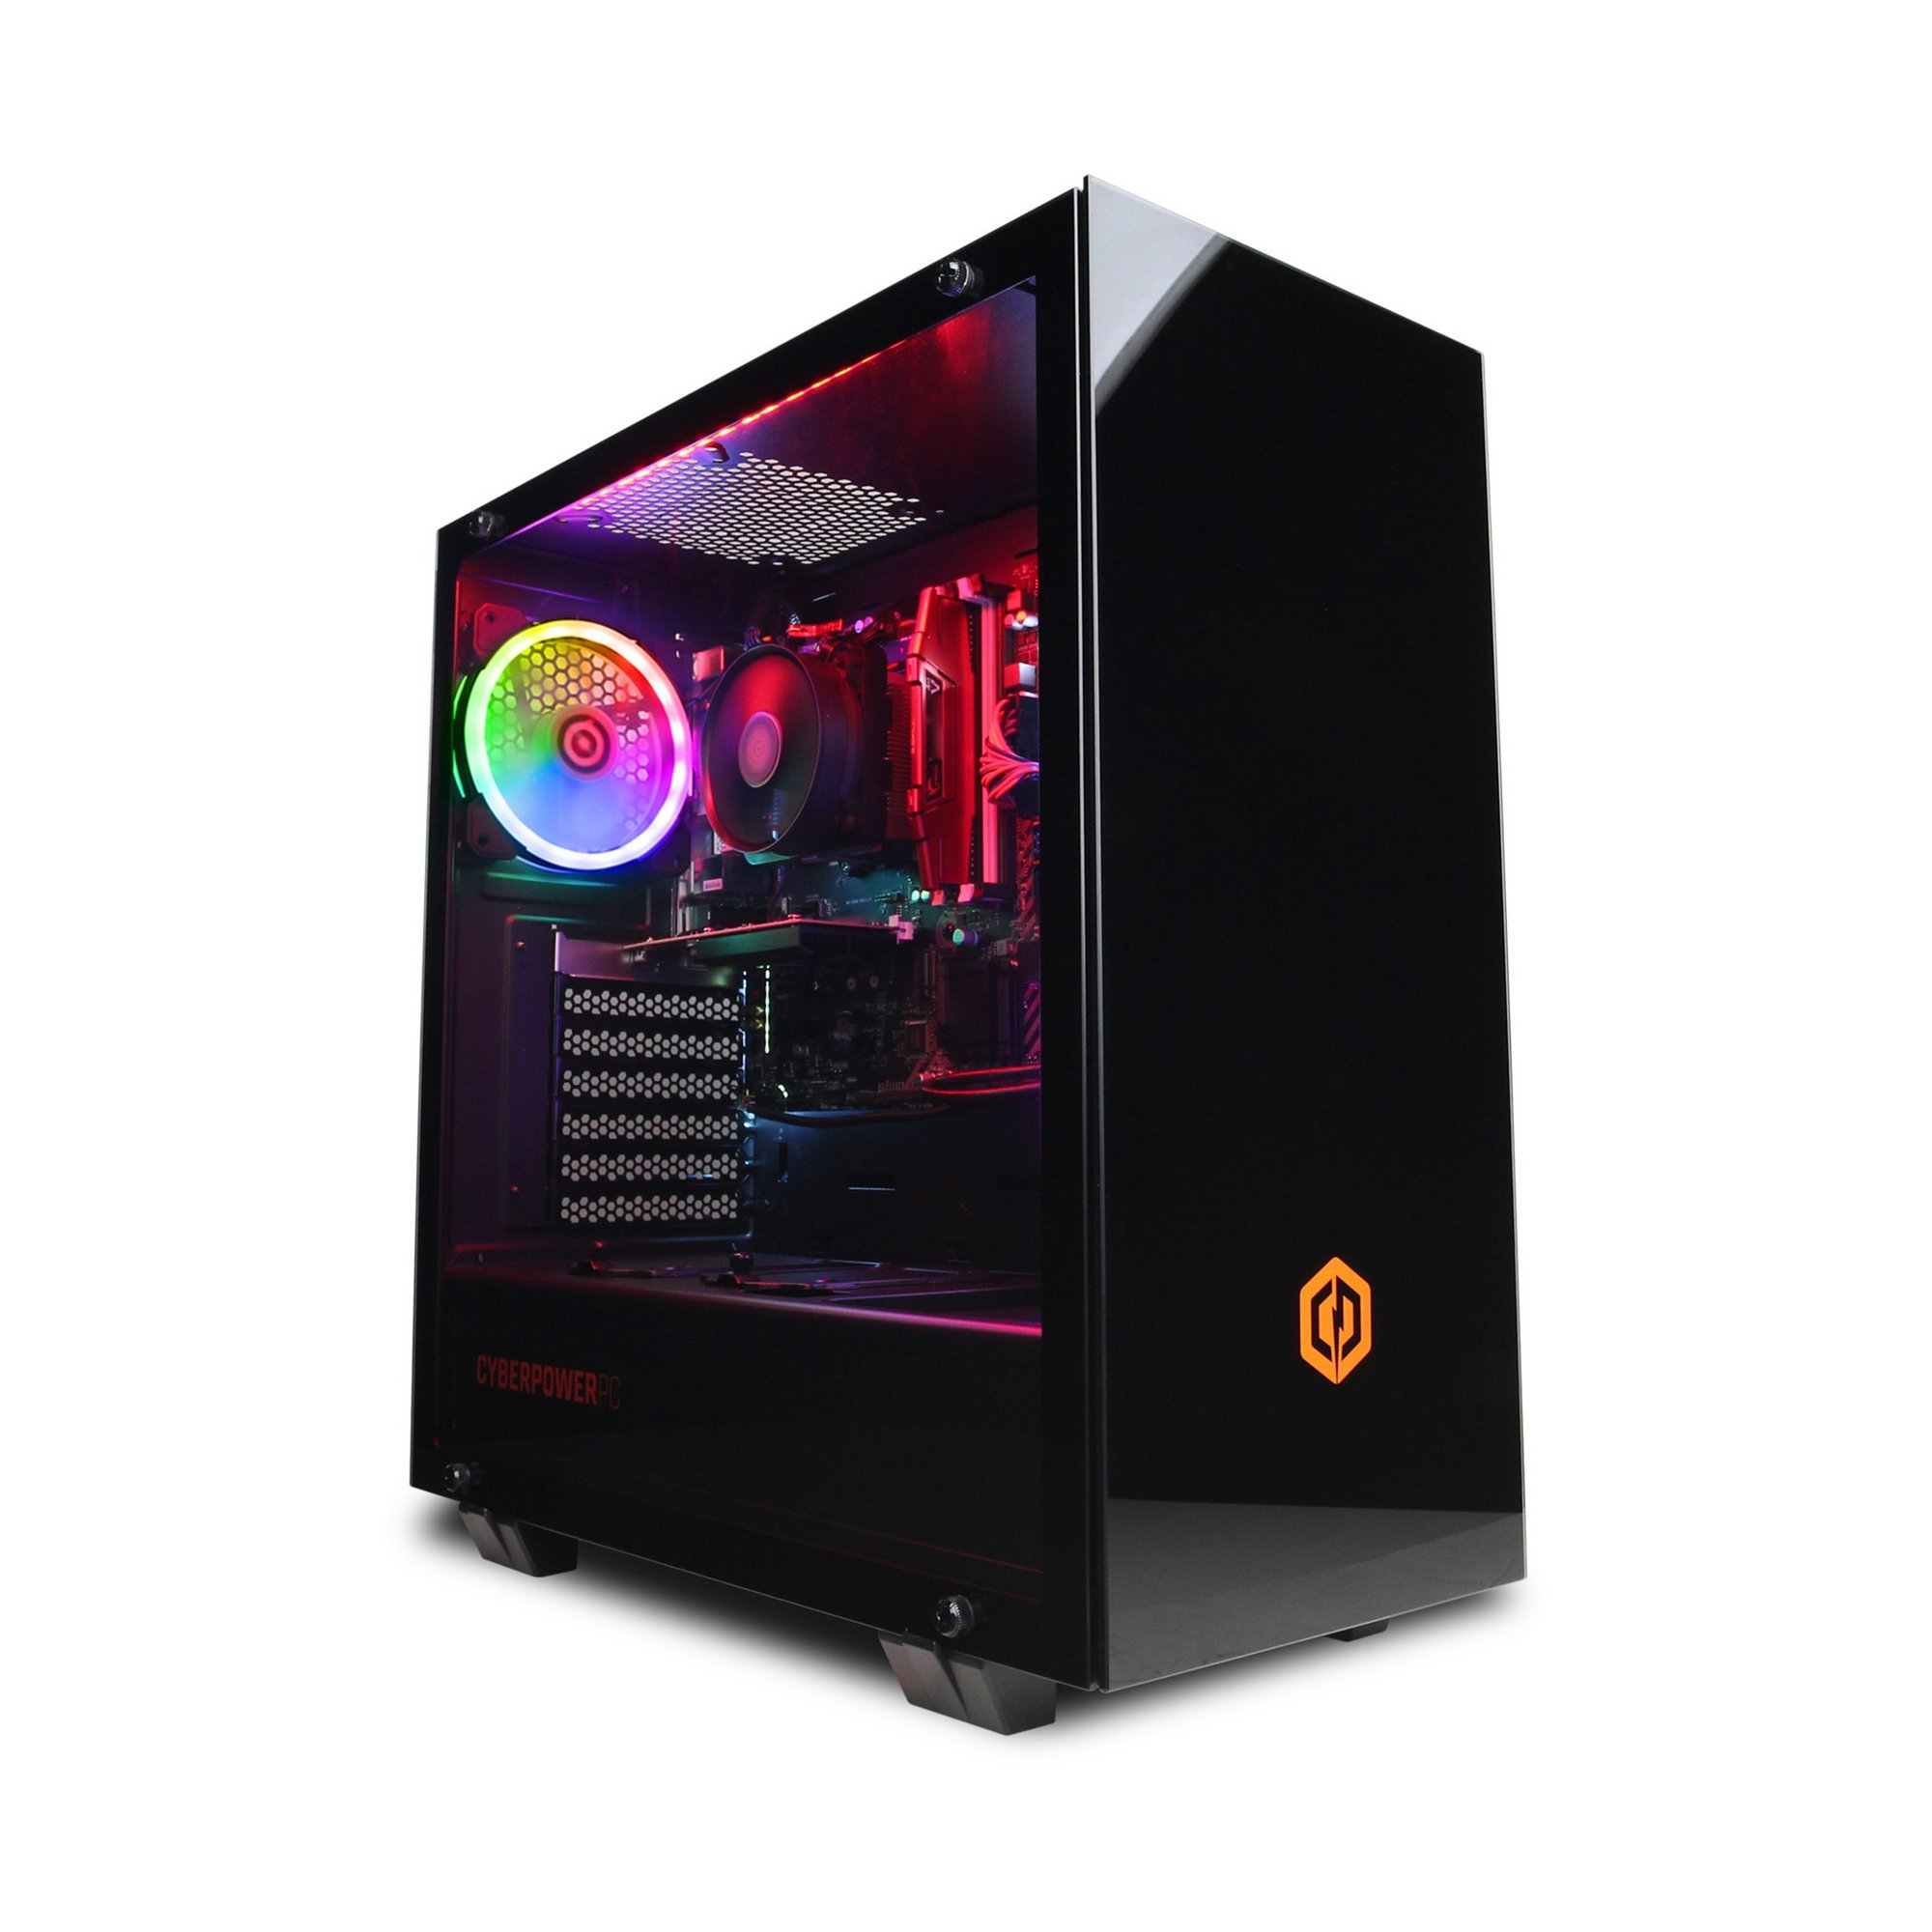 Image of Cyberpower AMD Ryzen 5 3400G Gaming PC